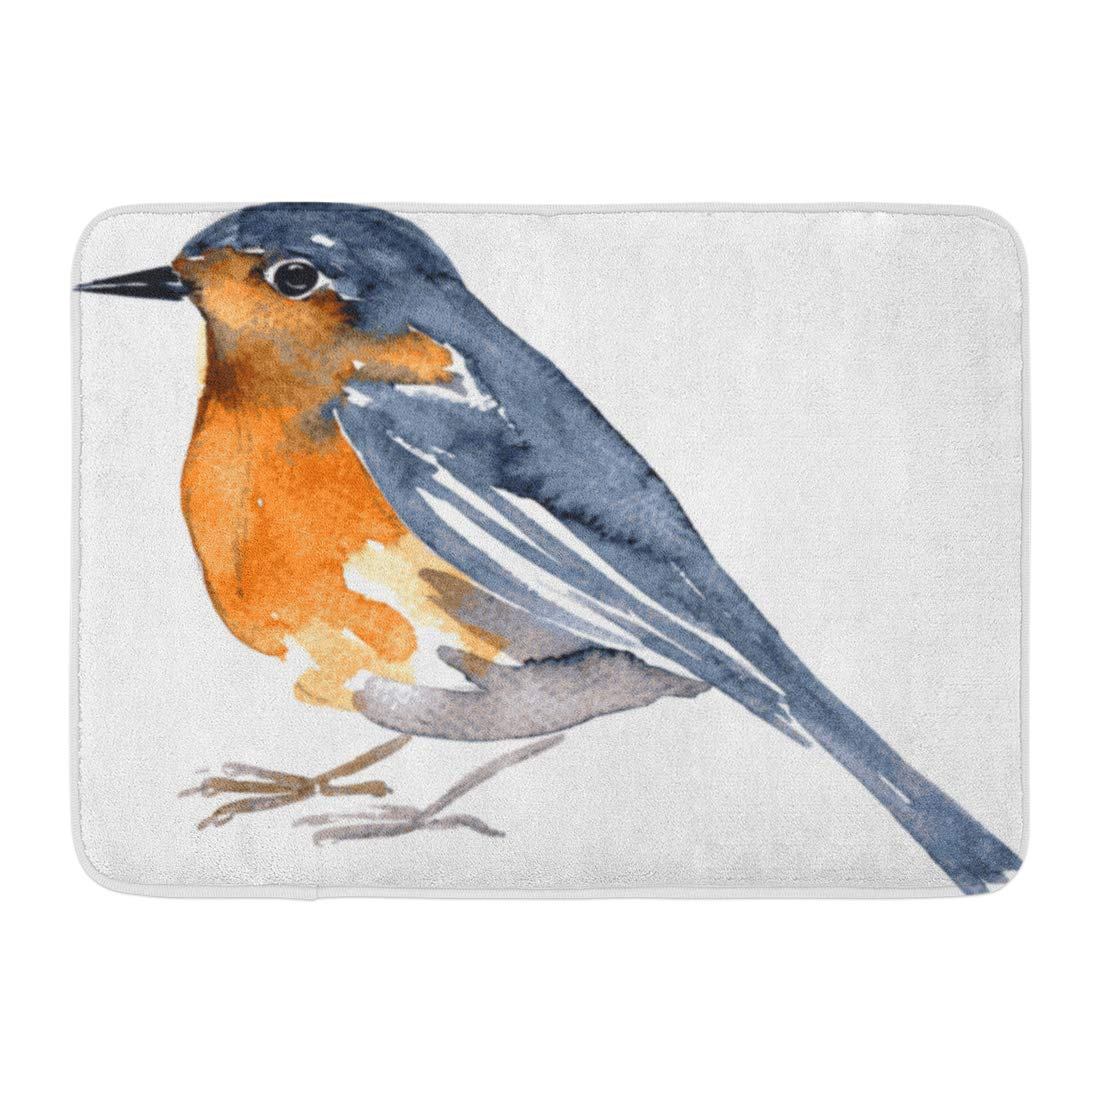 GODPOK Bluebird Orange Cardinal Watercolor Drawing Bird Robin at White Red Sparrow Sing Rug Doormat Bath Mat 23.6x15.7 inch